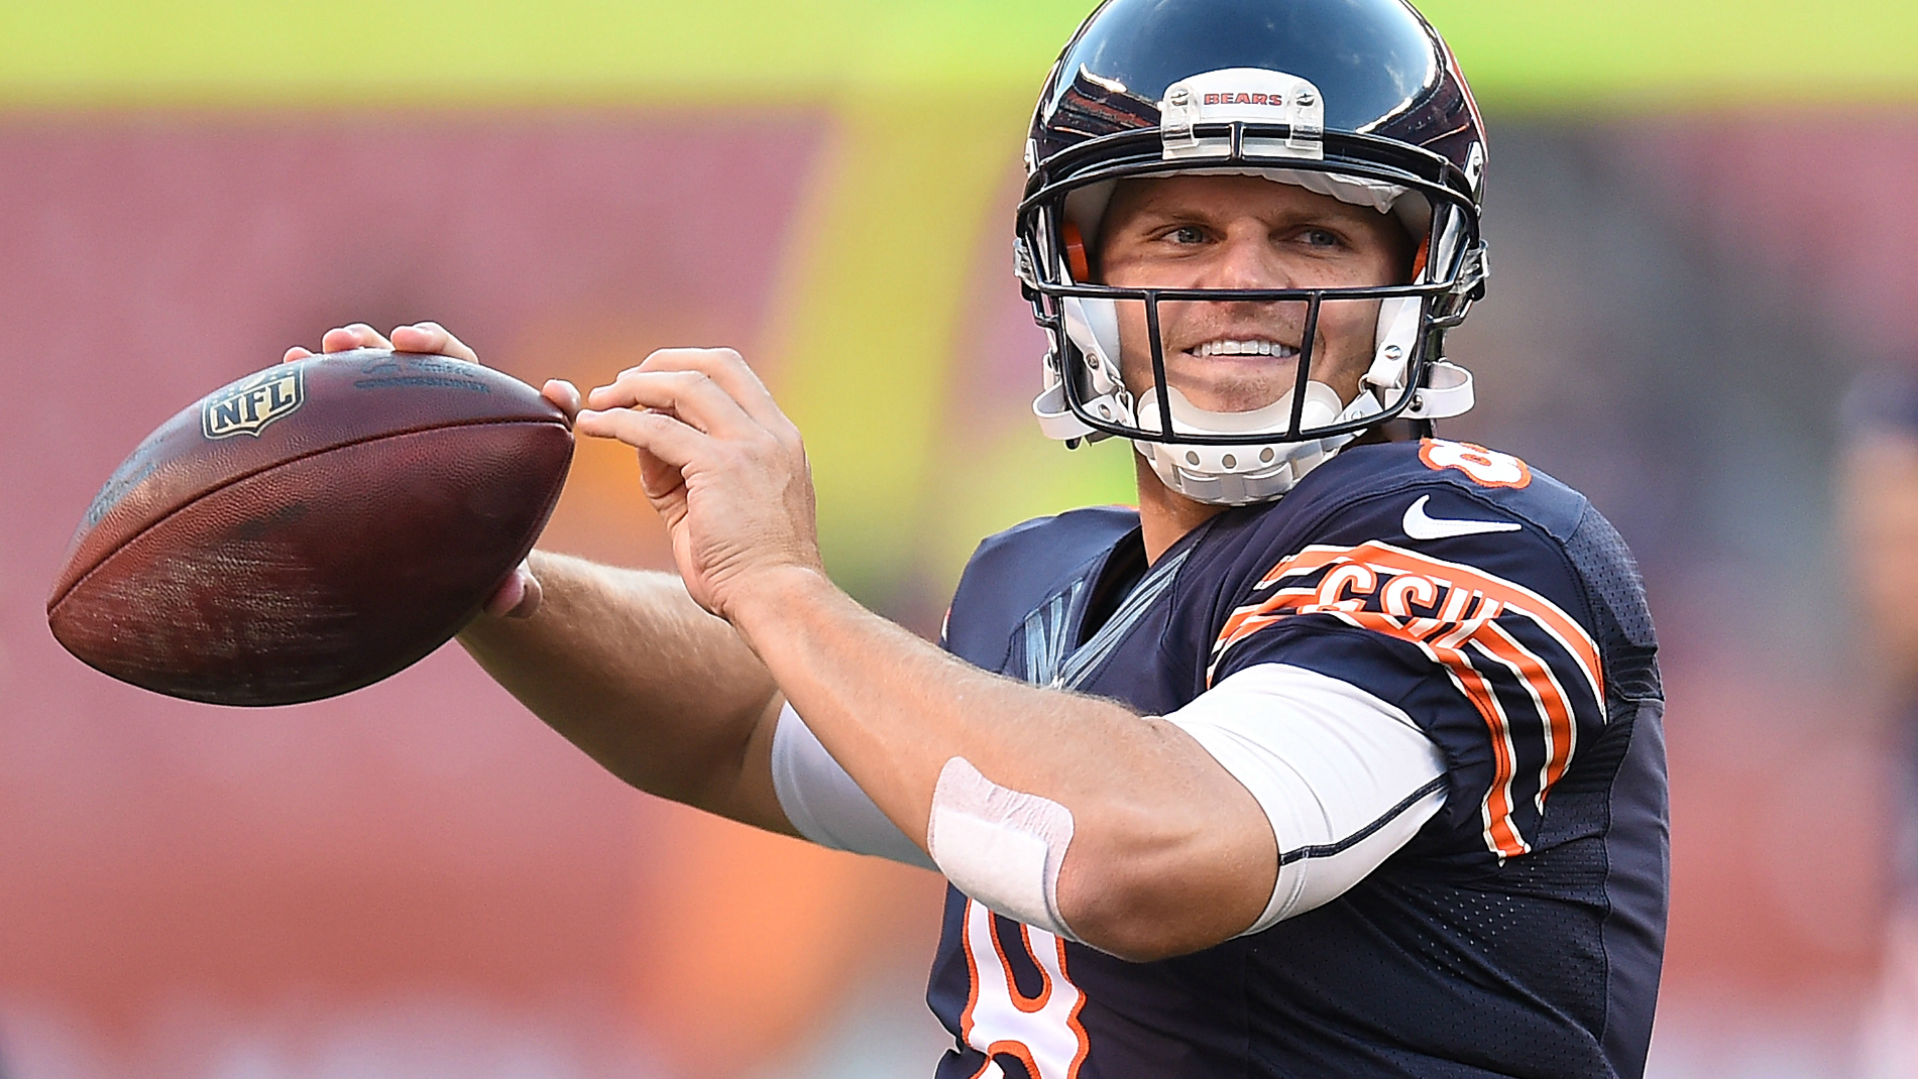 Lions vs. Bears betting preview and pick – Down-and-out Chicago turns to Clausen